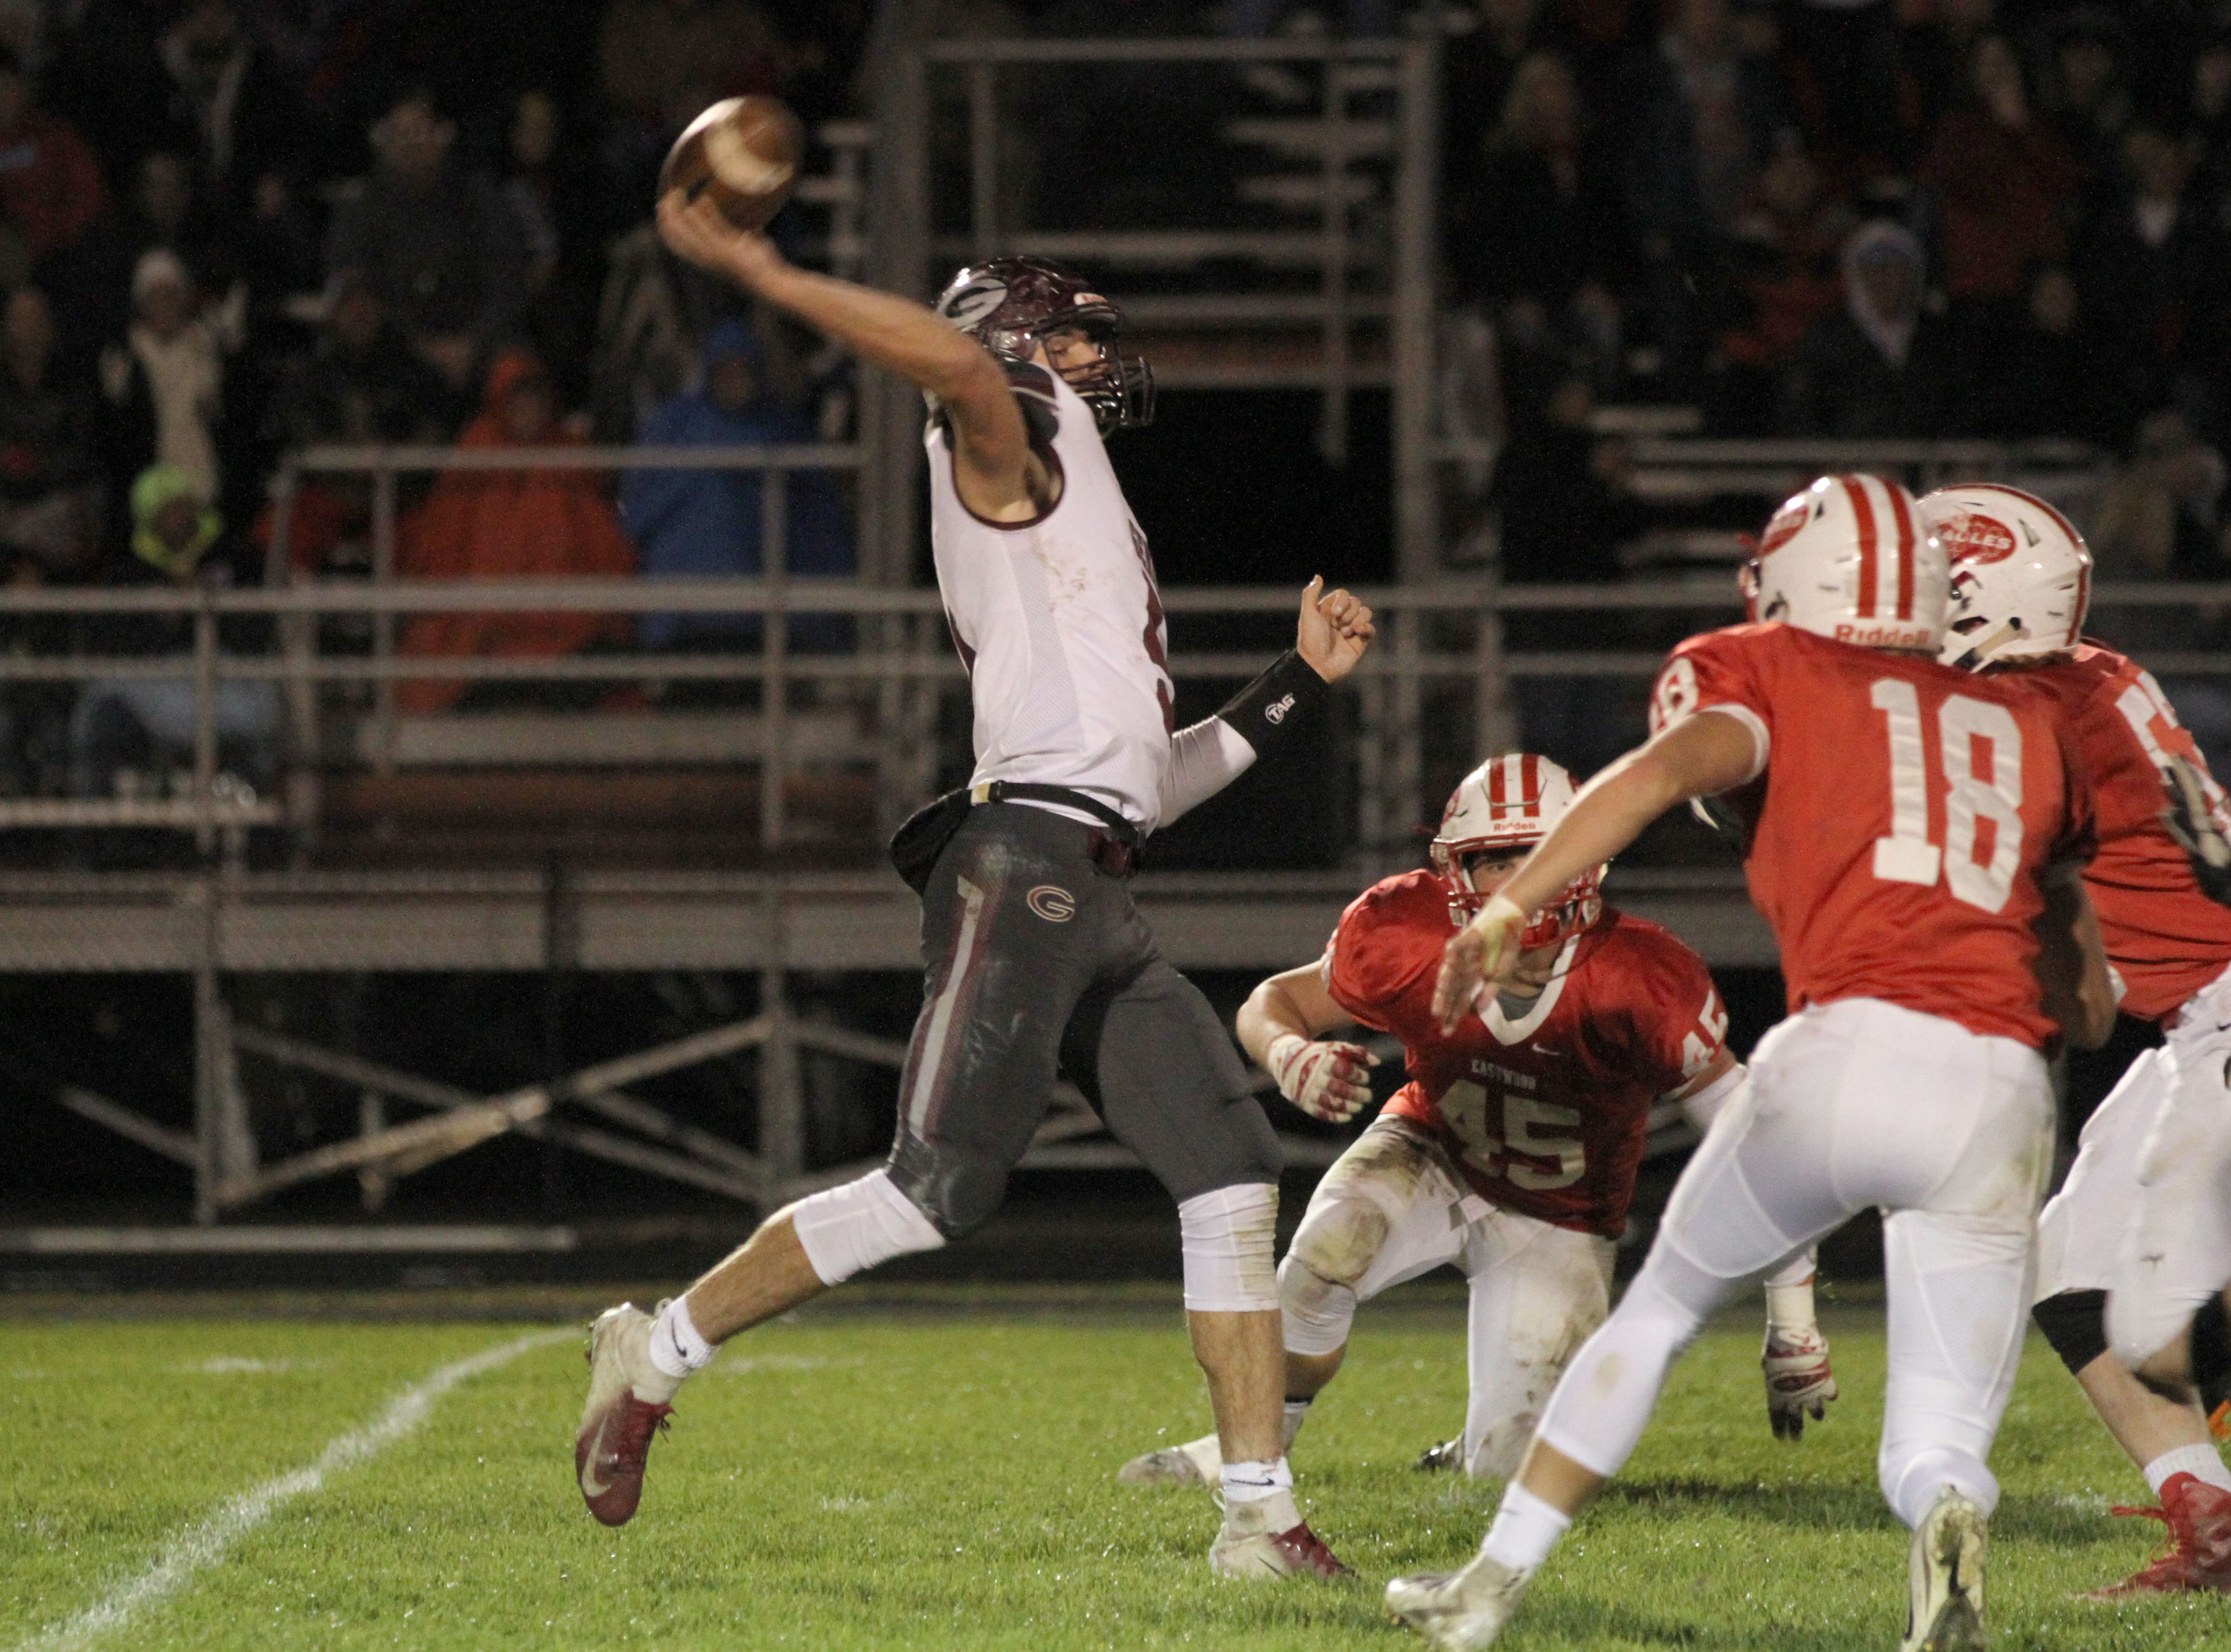 Genoa's Jacob Plantz throws for a touchdown to Nathan Lewis in first half action against Eastwood.